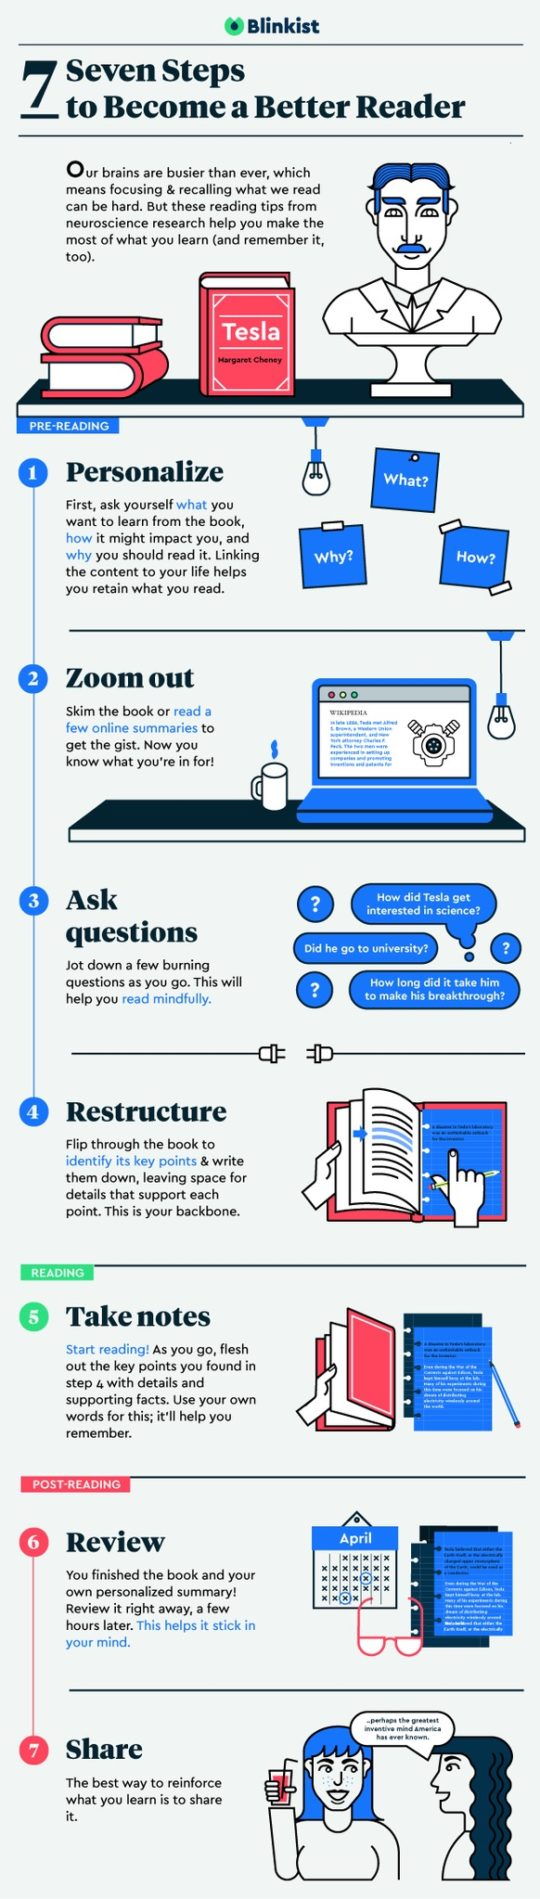 Seven proven steps to become a perfect reader #infographic